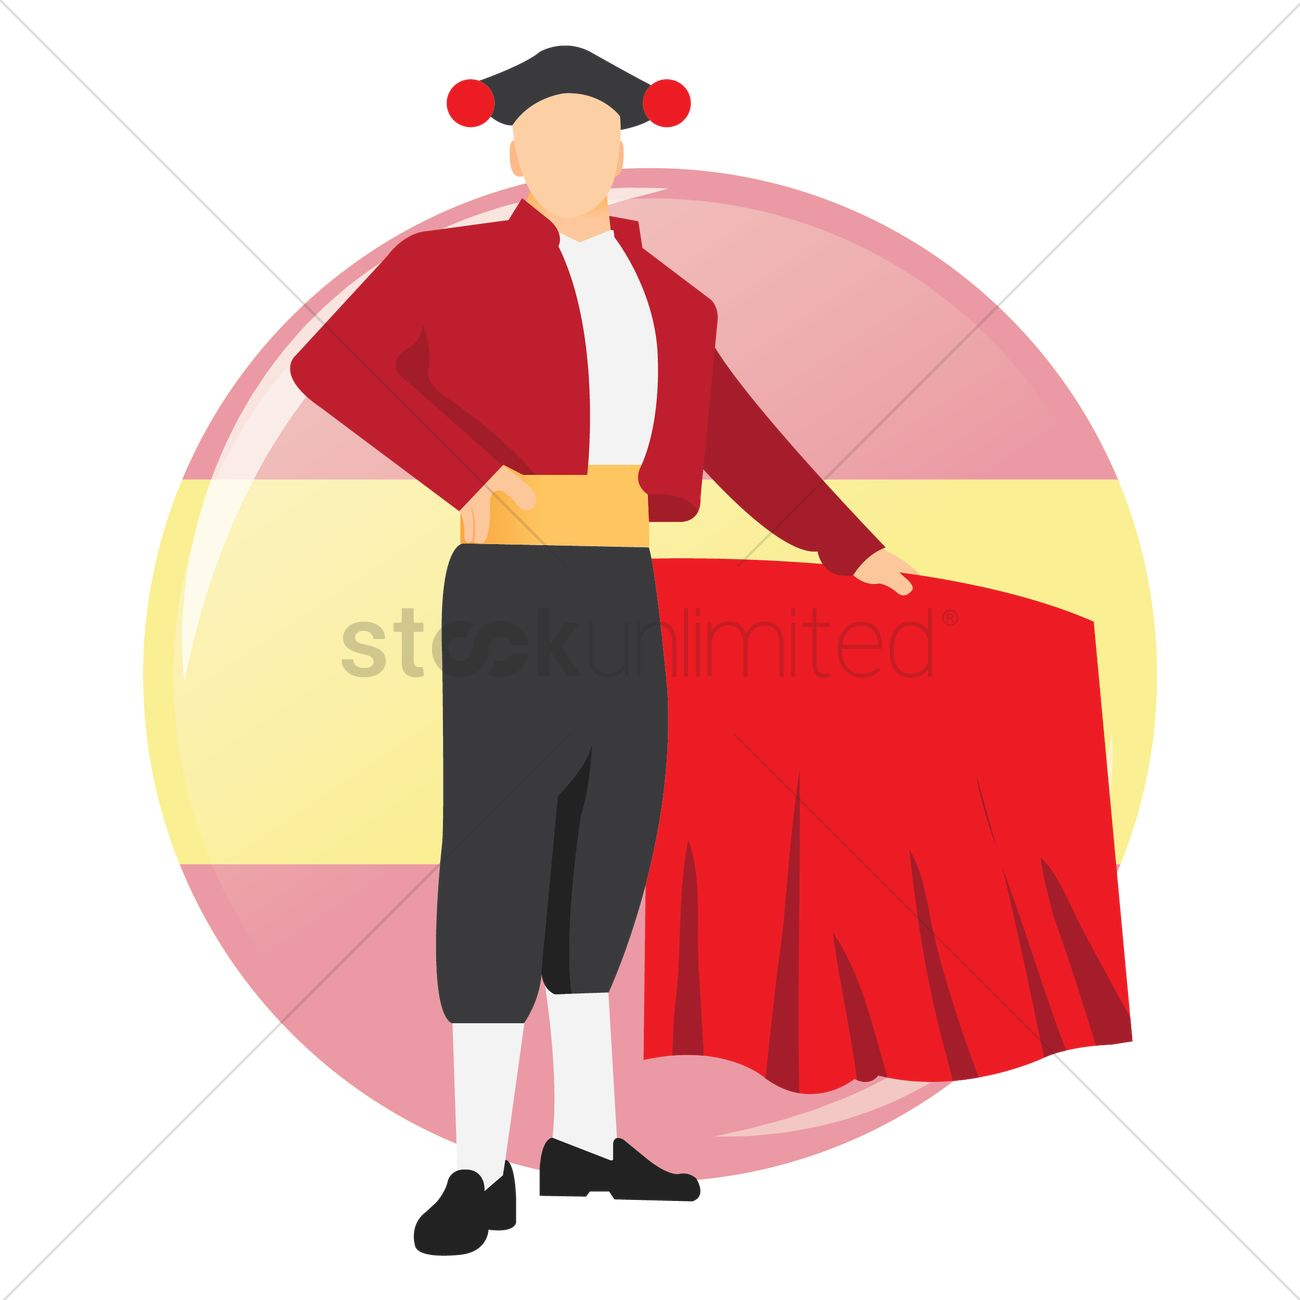 matador vector image 1600757 stockunlimited rh stockunlimited com Bullfighter Clip Art Matador Cartoon